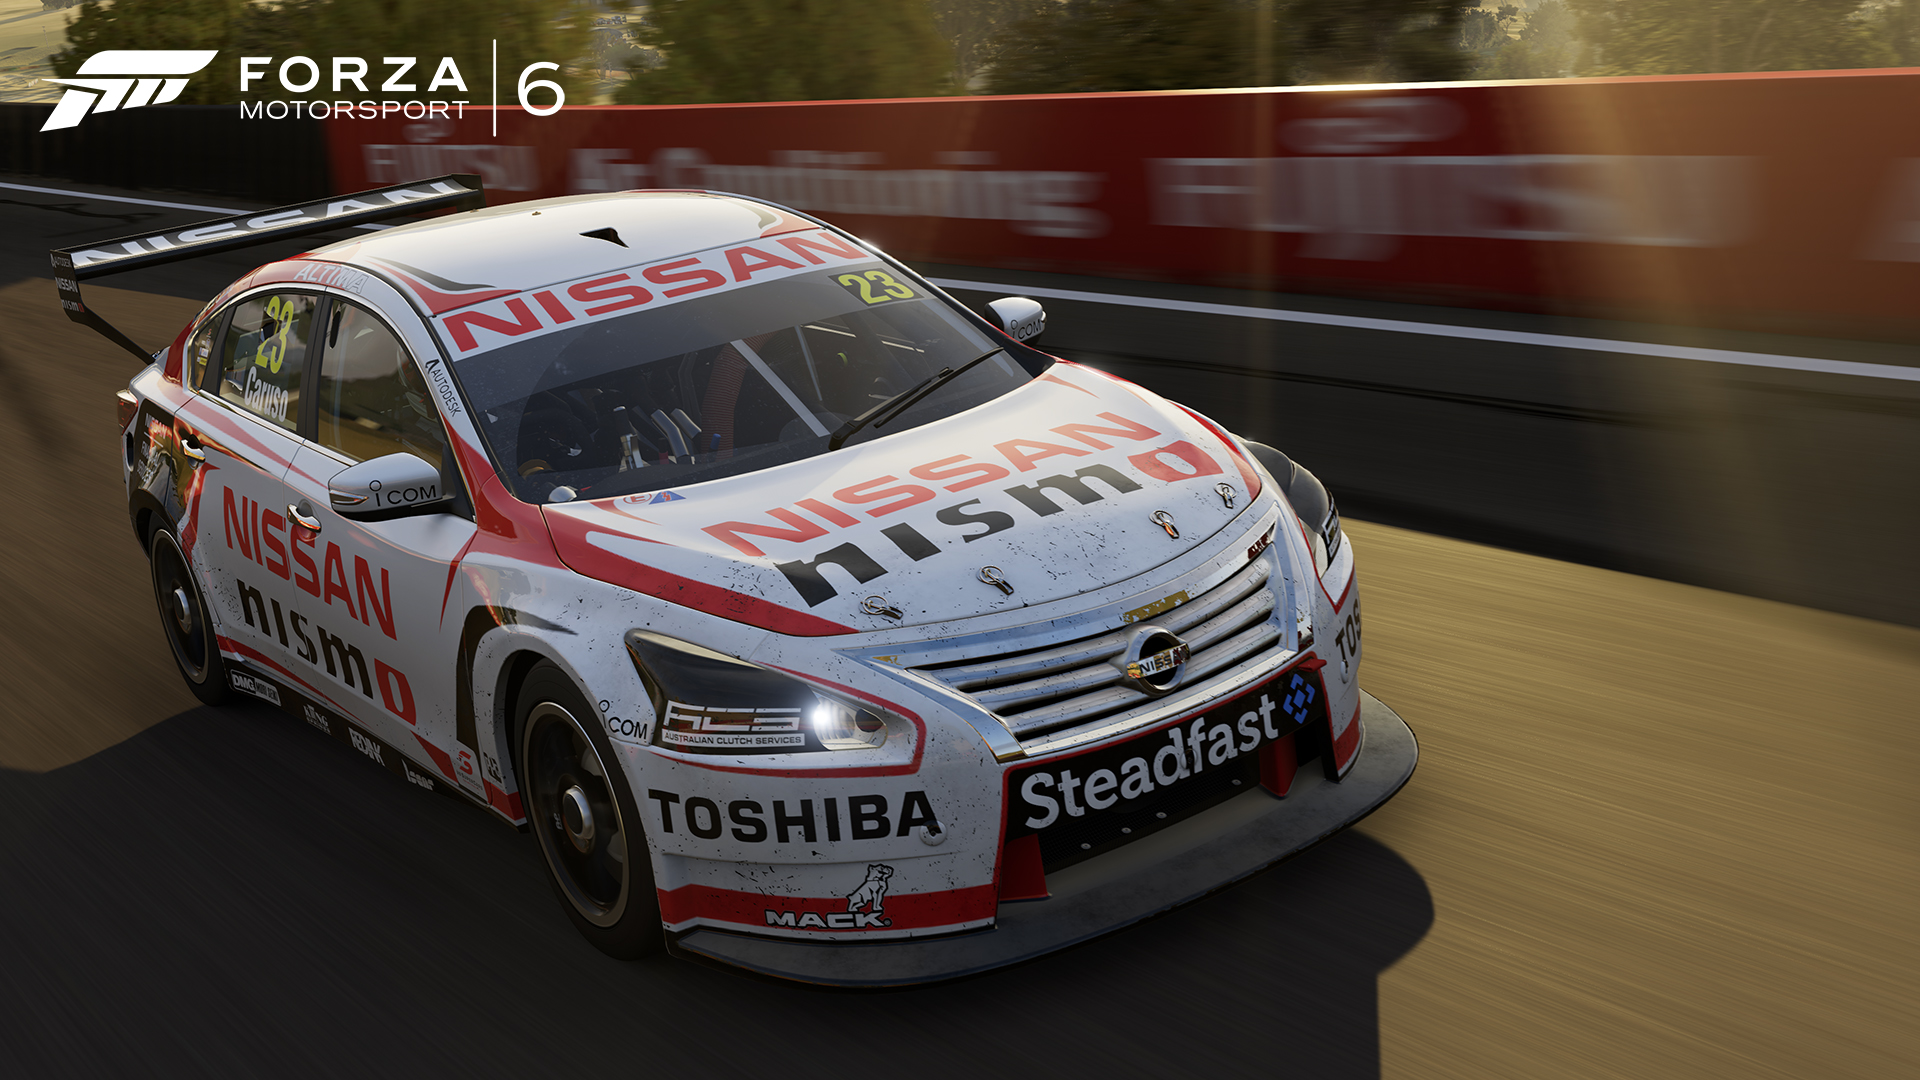 how to get tokens in forza 6